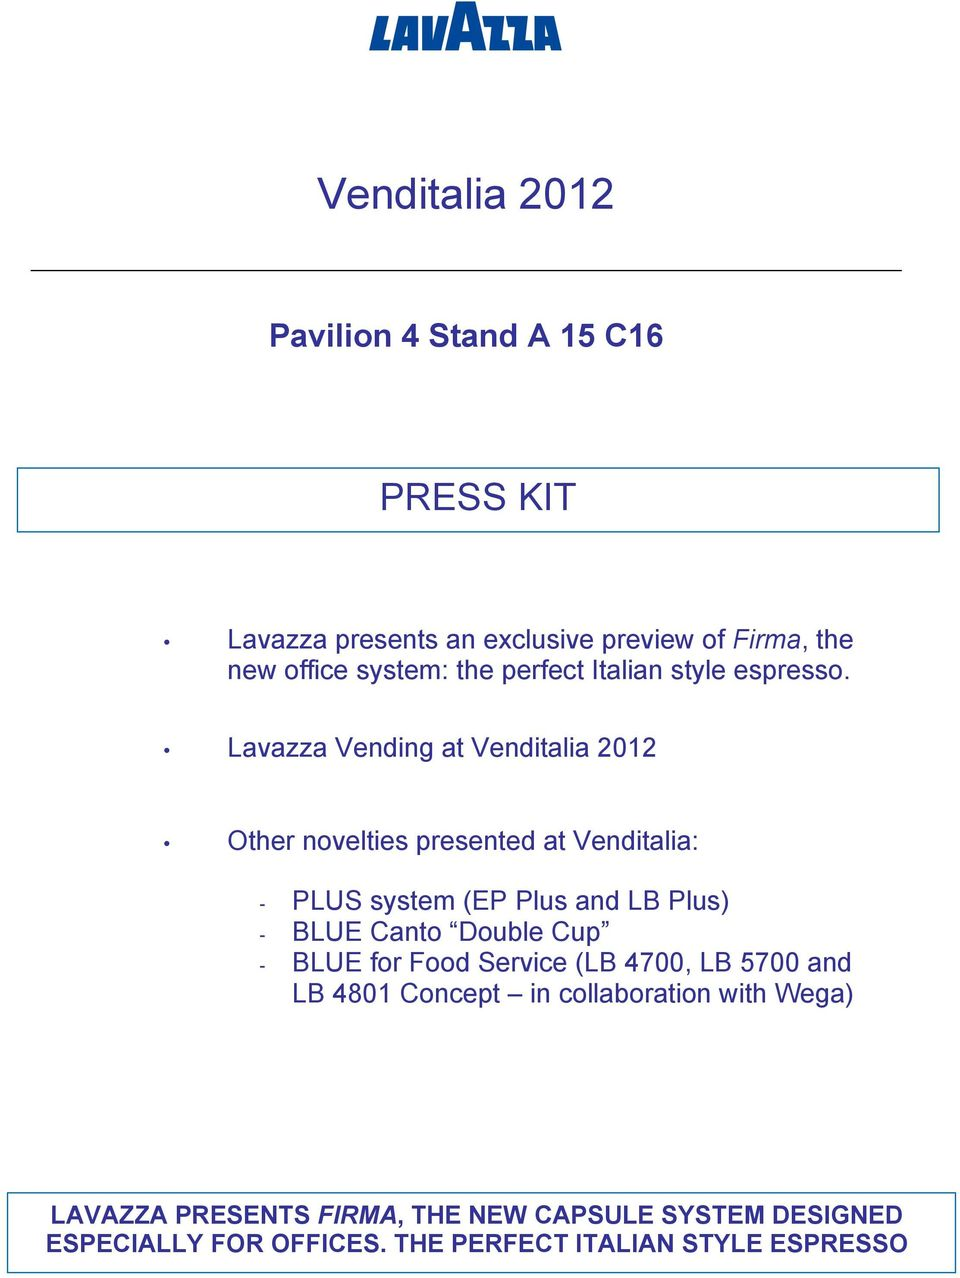 Venditalia Pavilion 4 Stand A 15 C16 PRESS KIT - PDF